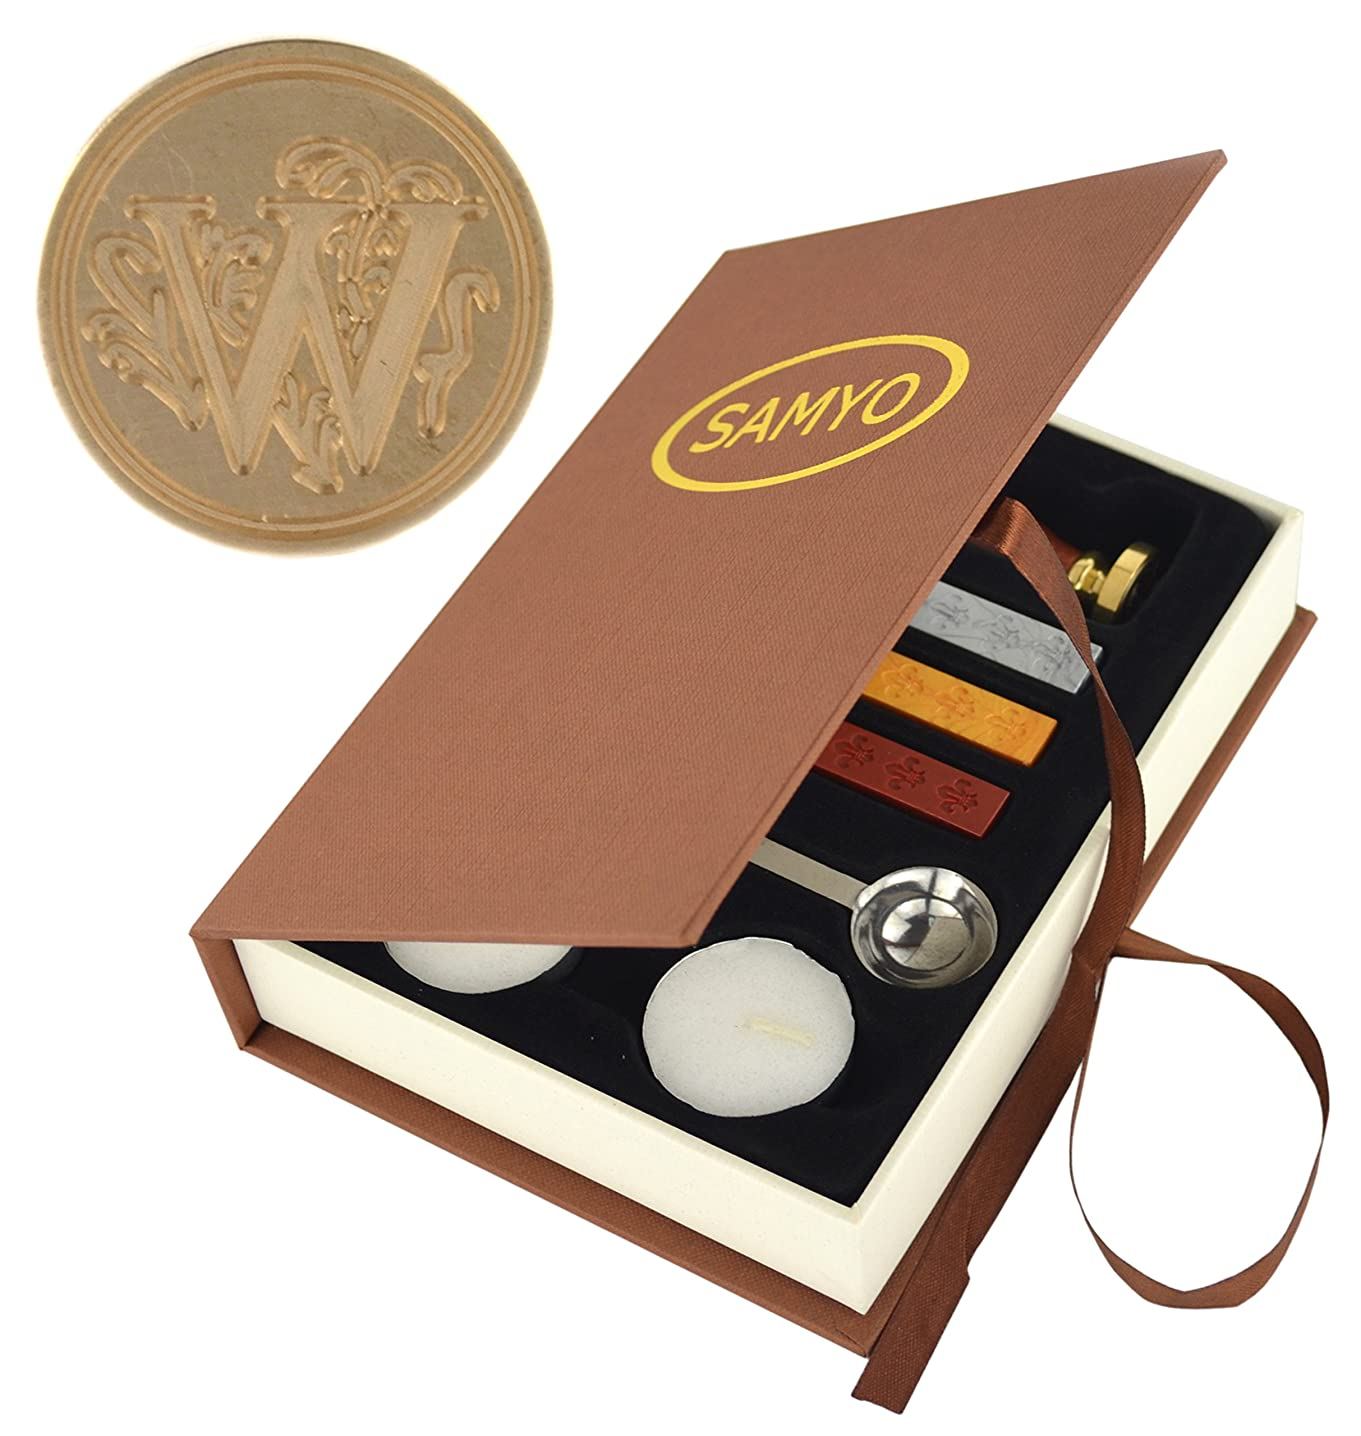 Stamp Seal Sealing Wax Vintage Classic Old-Fashioned Antique Alphabet Initial Letter Set Brass Color Creative Romantic Stamp Maker (W)